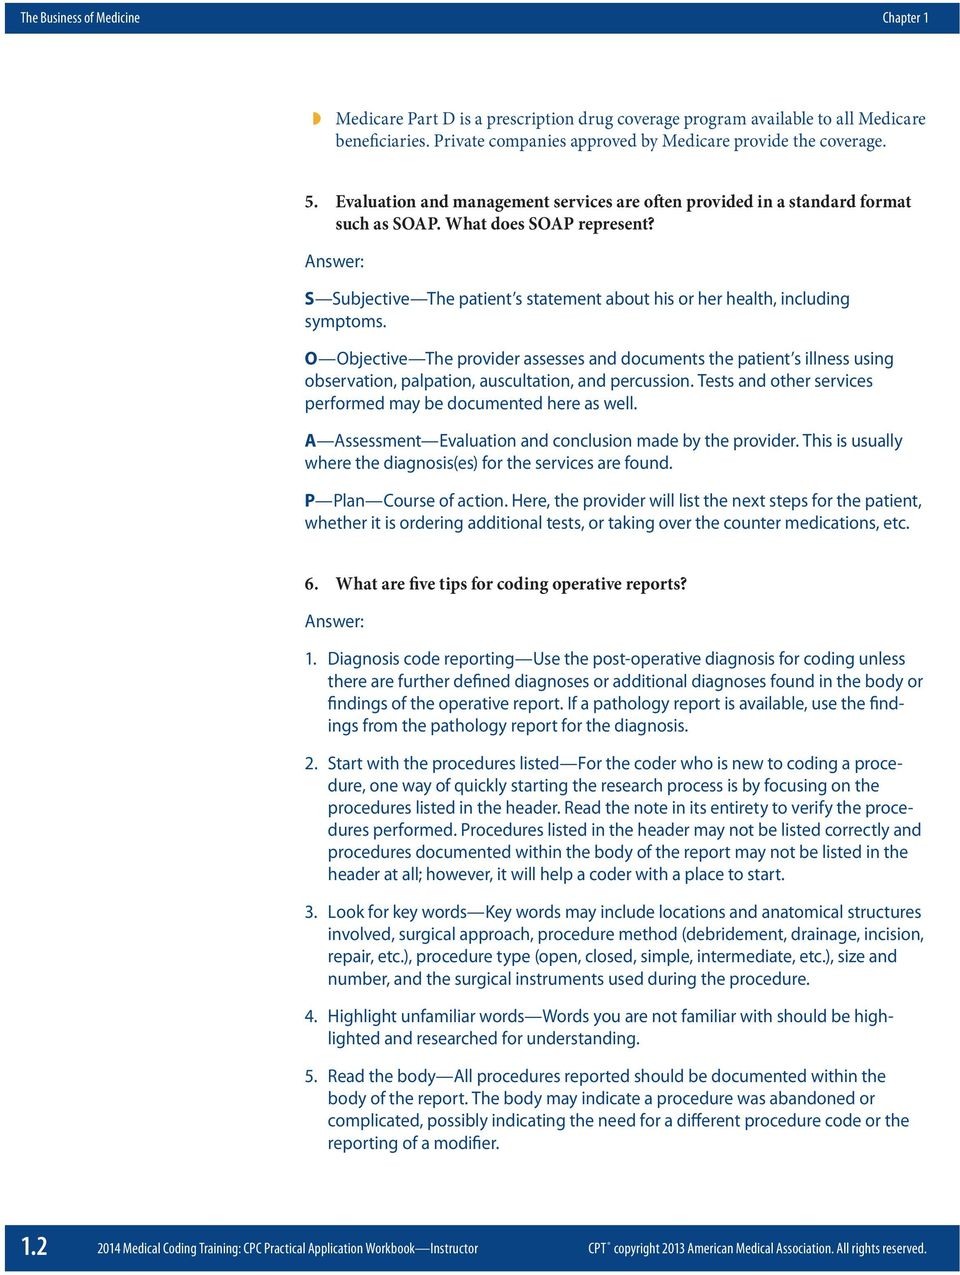 2014 medical coding training cpc practical application workbook answer s subjective the patient s statement about his or her health including symptoms fandeluxe Images